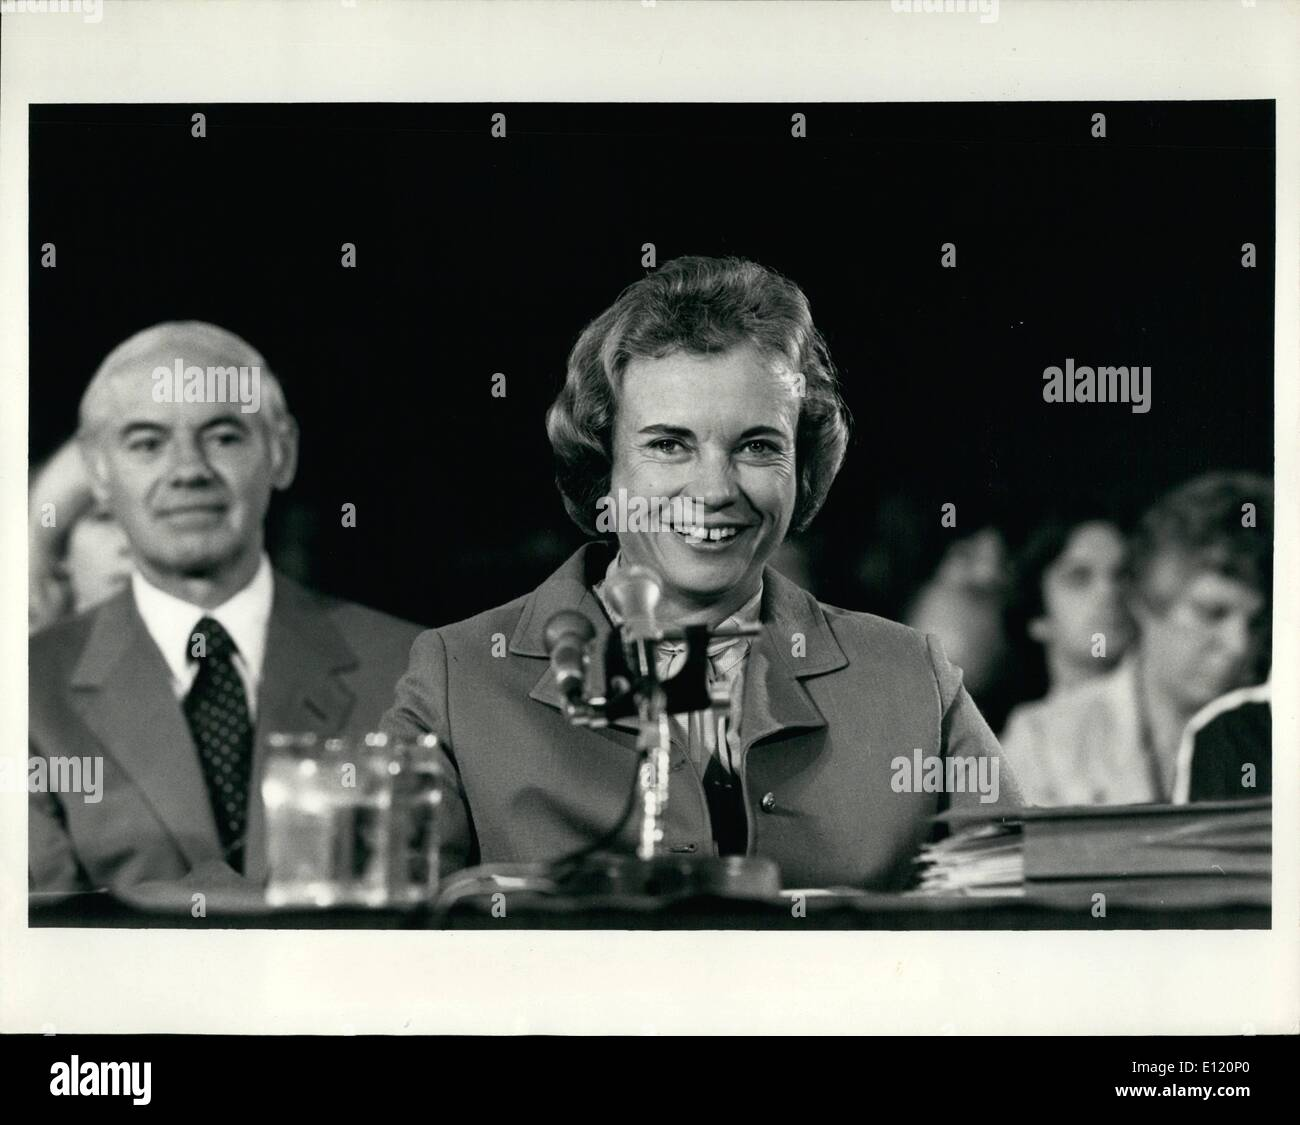 Sep. 09, 1981 - Judge O'Connor Testifies Arizona Judge Sandra O'Connor (above) as she testifies before the Senate Judiciary Committee at her confirmation hearings. If voted on favourable, which is a certainty, she will become the first woman to sit on the U.S. Supreme Court. - Stock Image